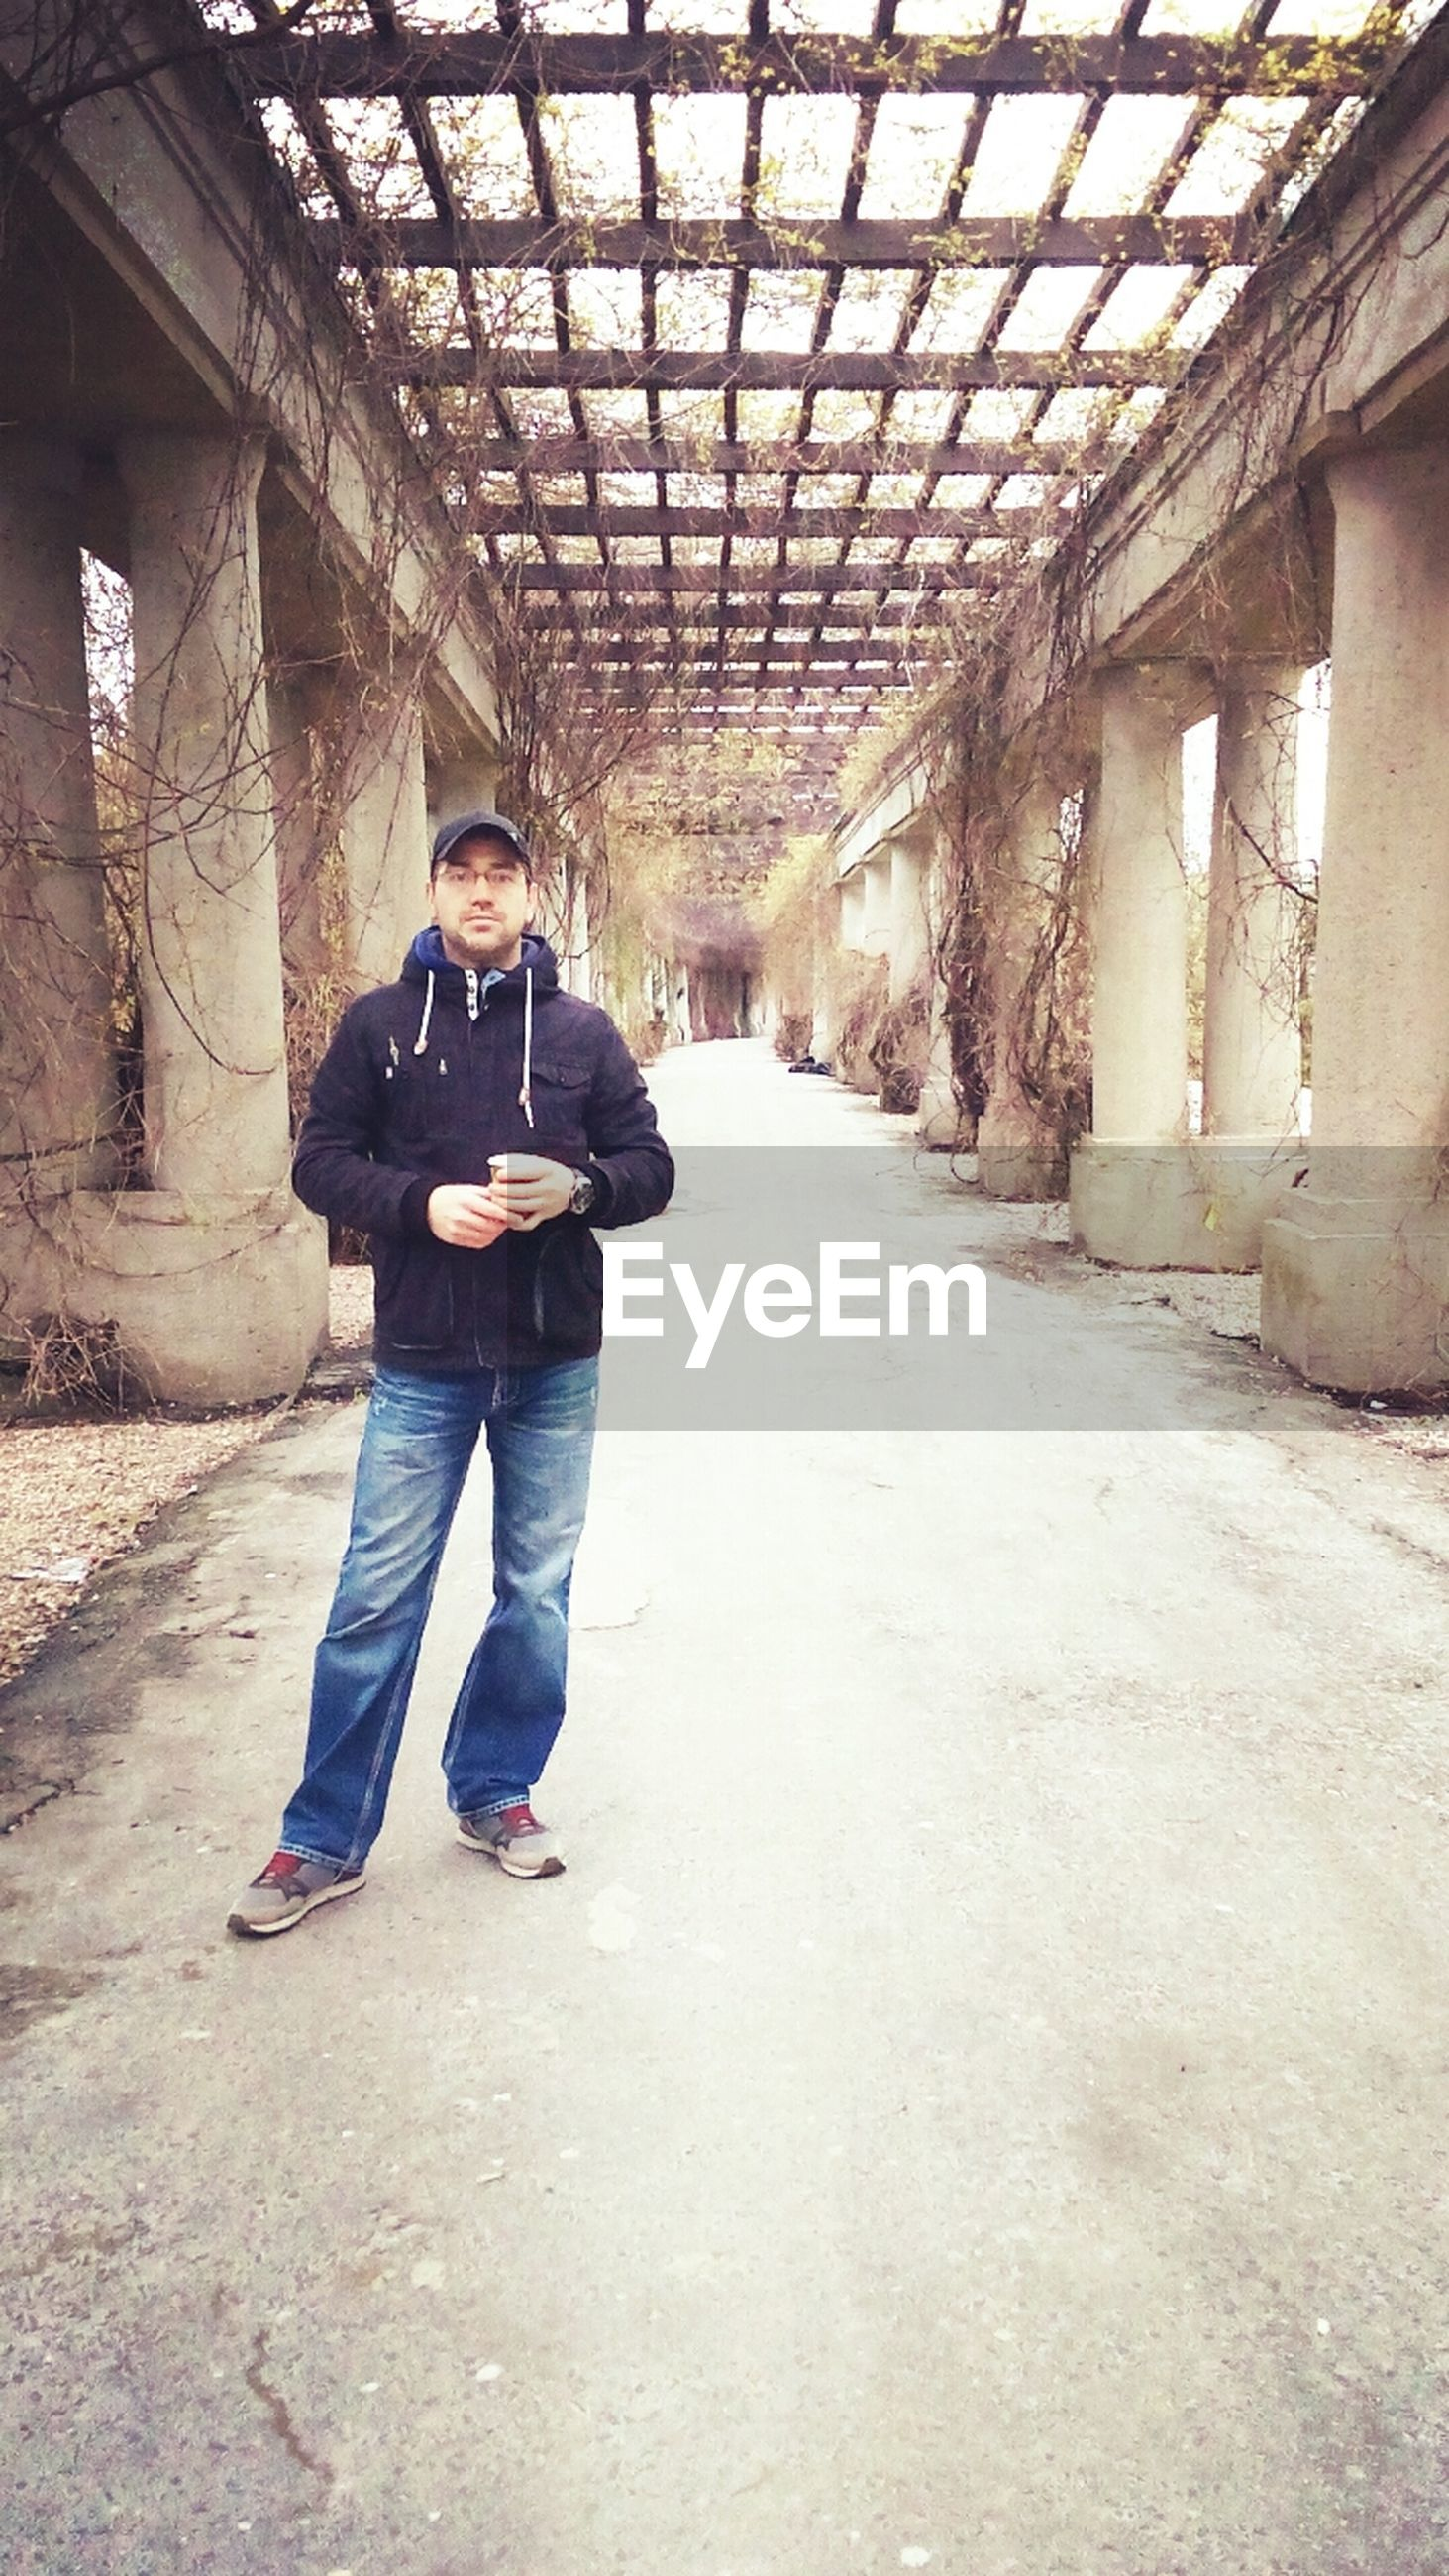 full length, architecture, built structure, lifestyles, the way forward, casual clothing, building exterior, walking, leisure activity, rear view, person, men, diminishing perspective, vanishing point, standing, day, building